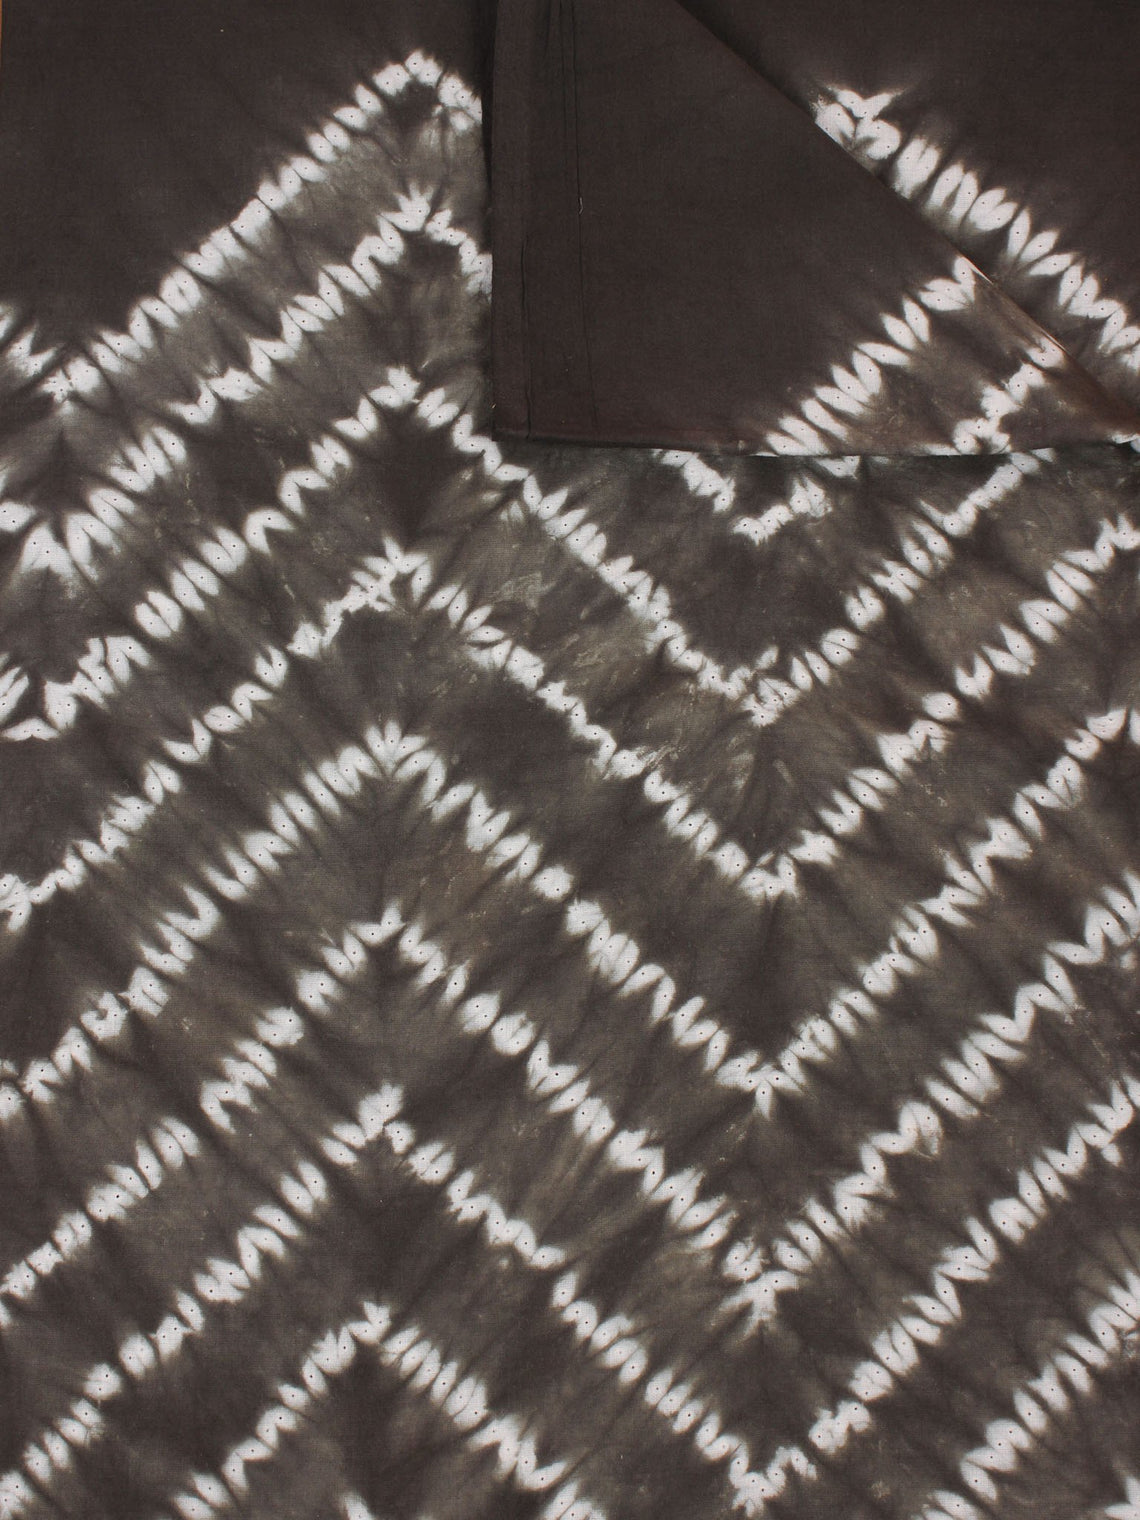 Black Ivory Hand Shibori Dyed Cotton Fabric Per Meter - F0916266